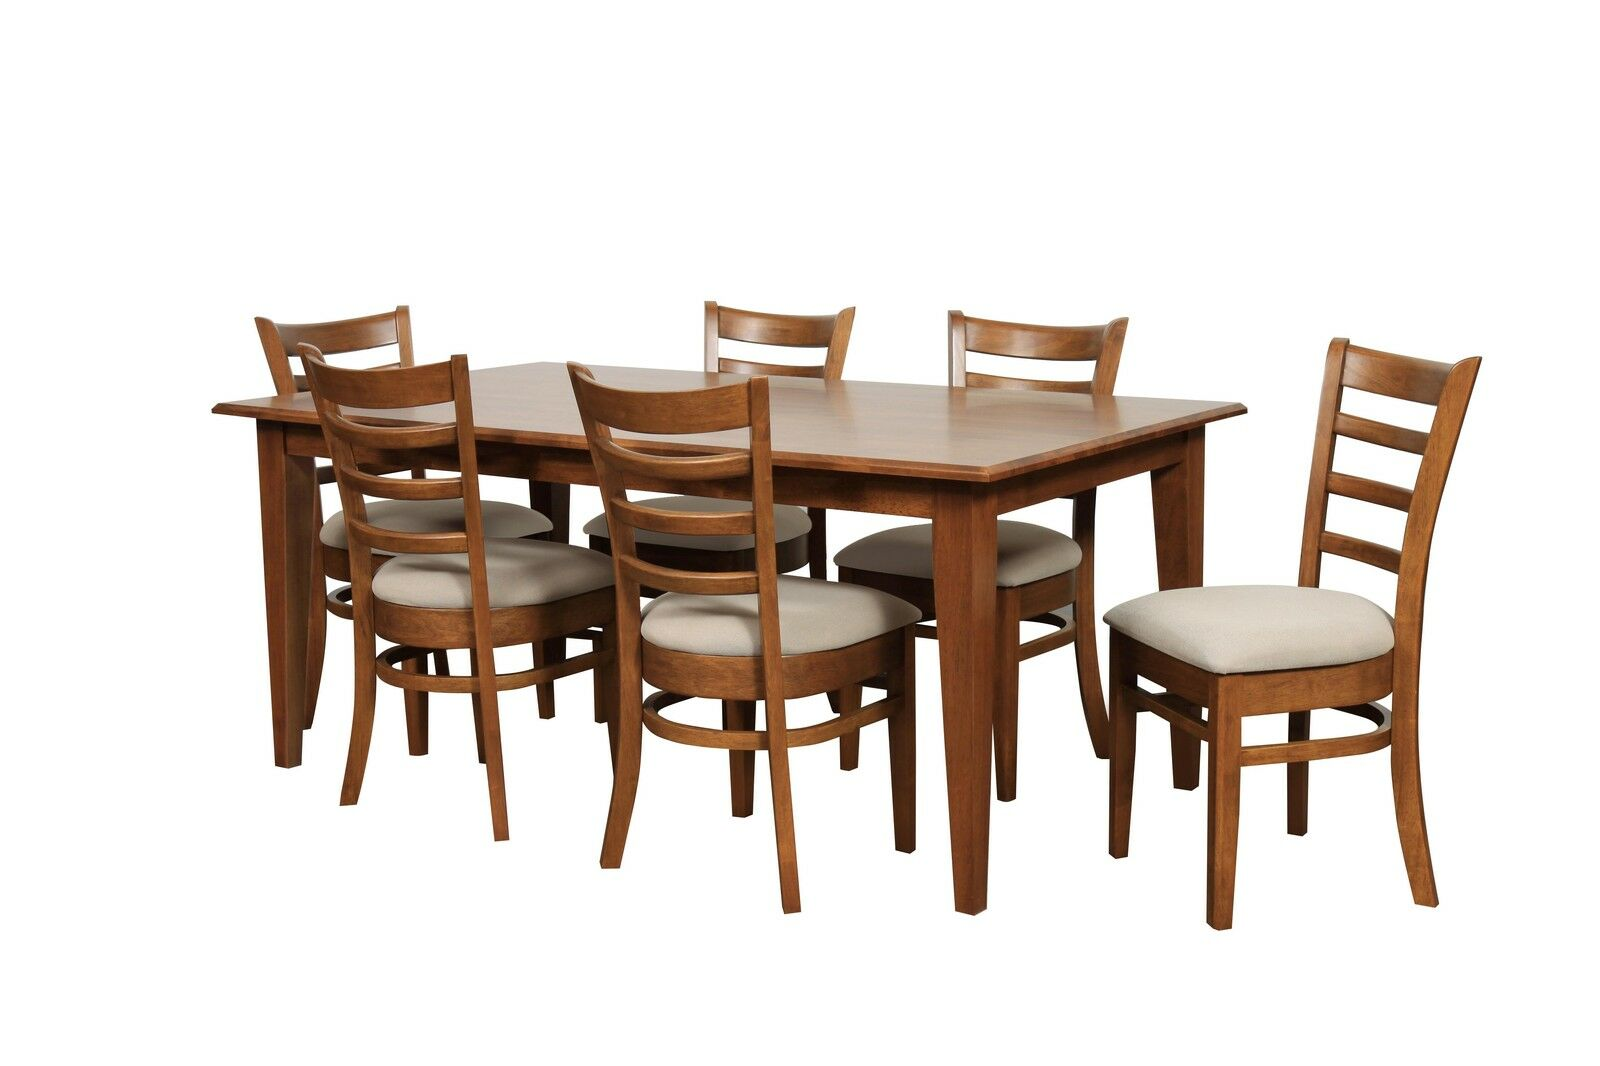 retro dining table and chairs ebay. Black Bedroom Furniture Sets. Home Design Ideas